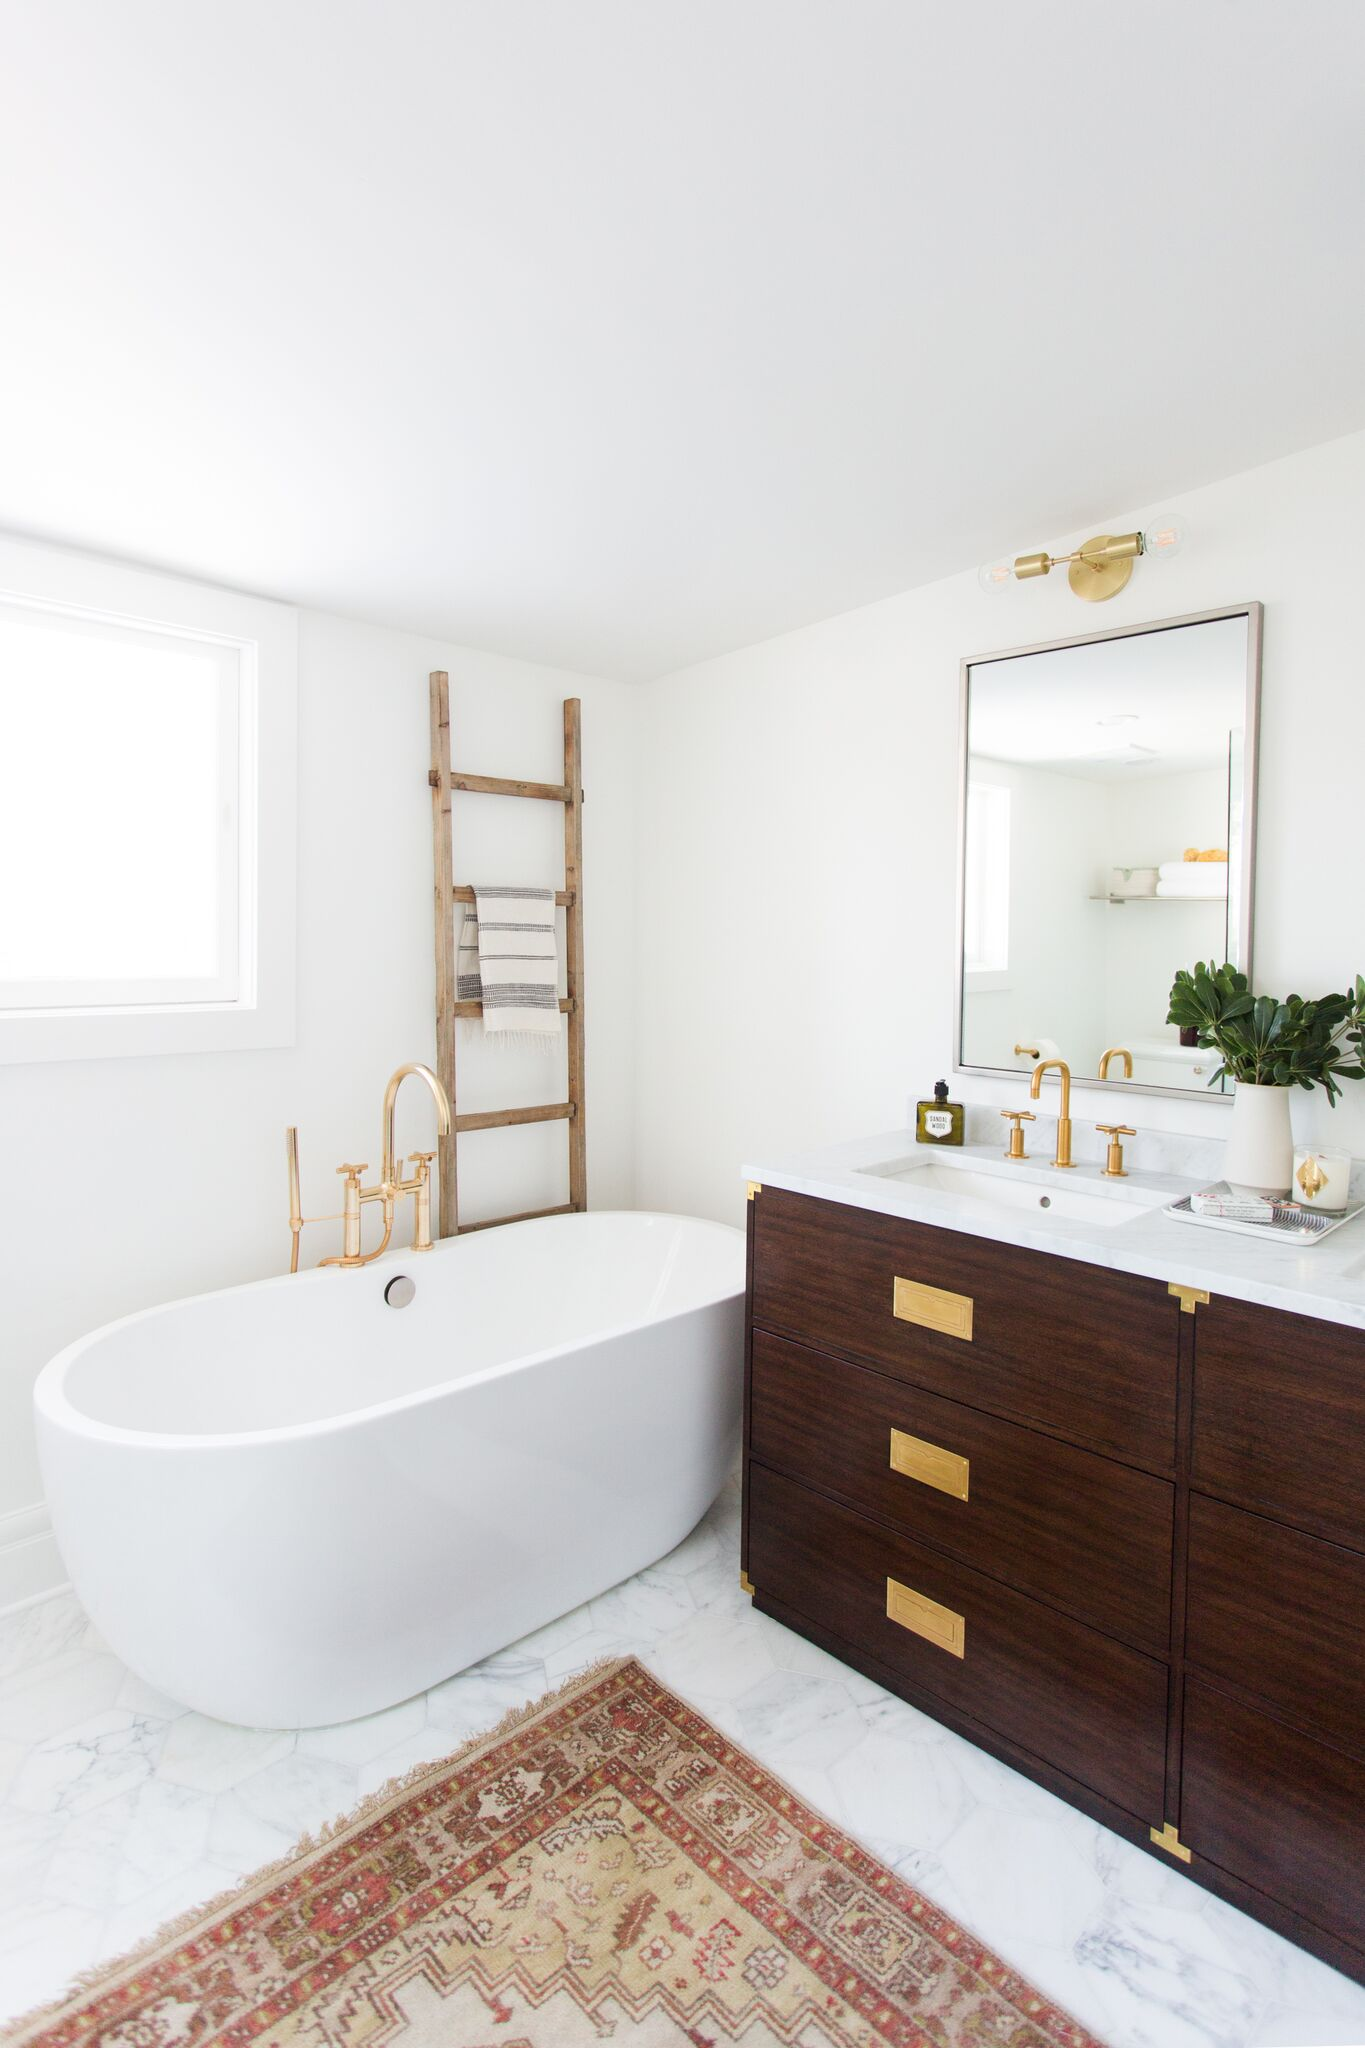 Large white tub with red area rug in bathroom